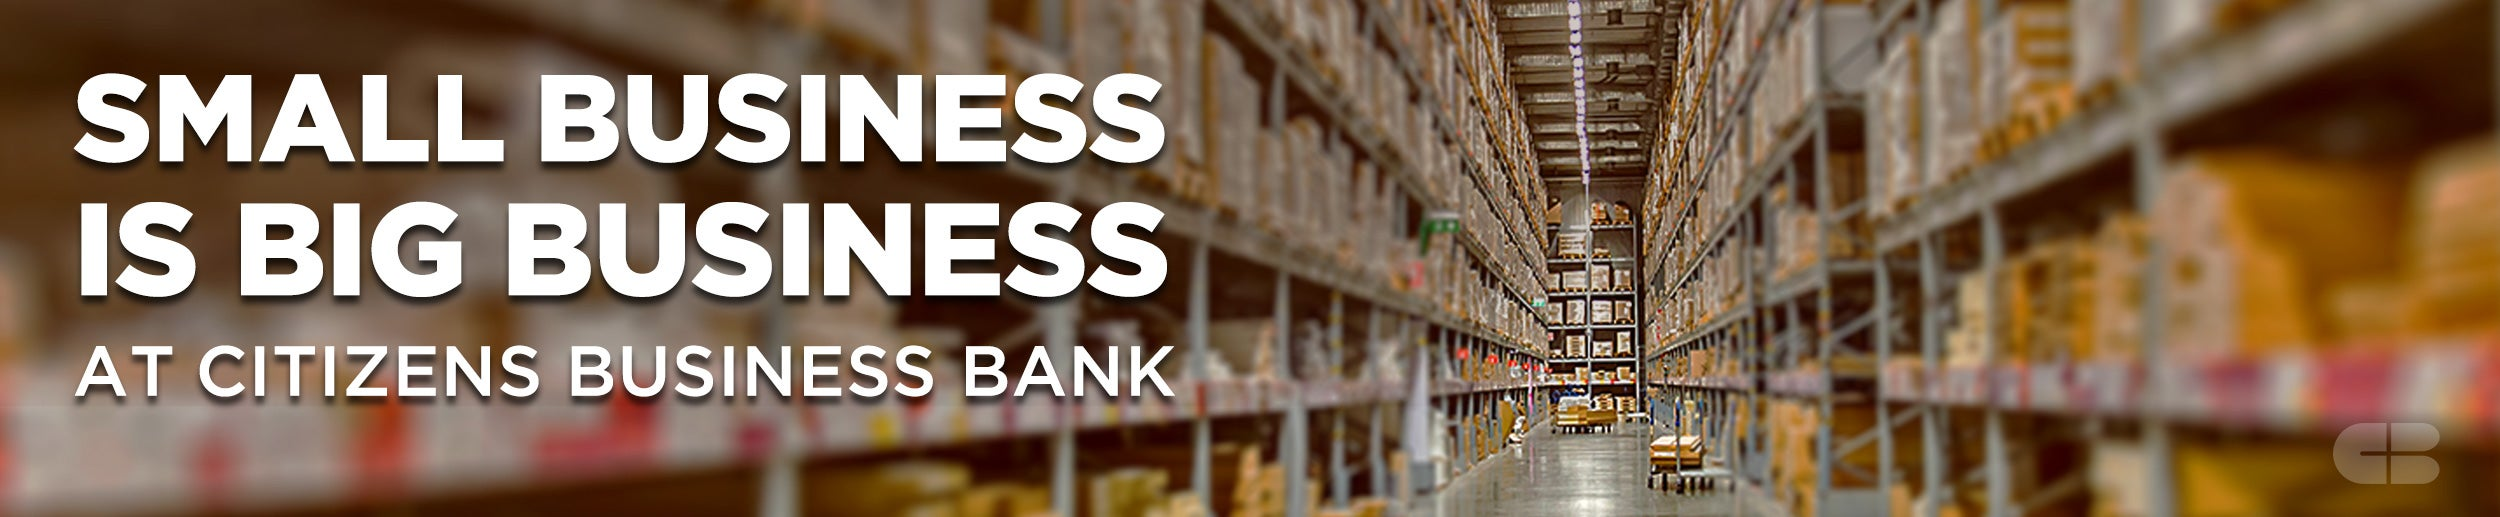 small business is big business at Citizens Business Bank